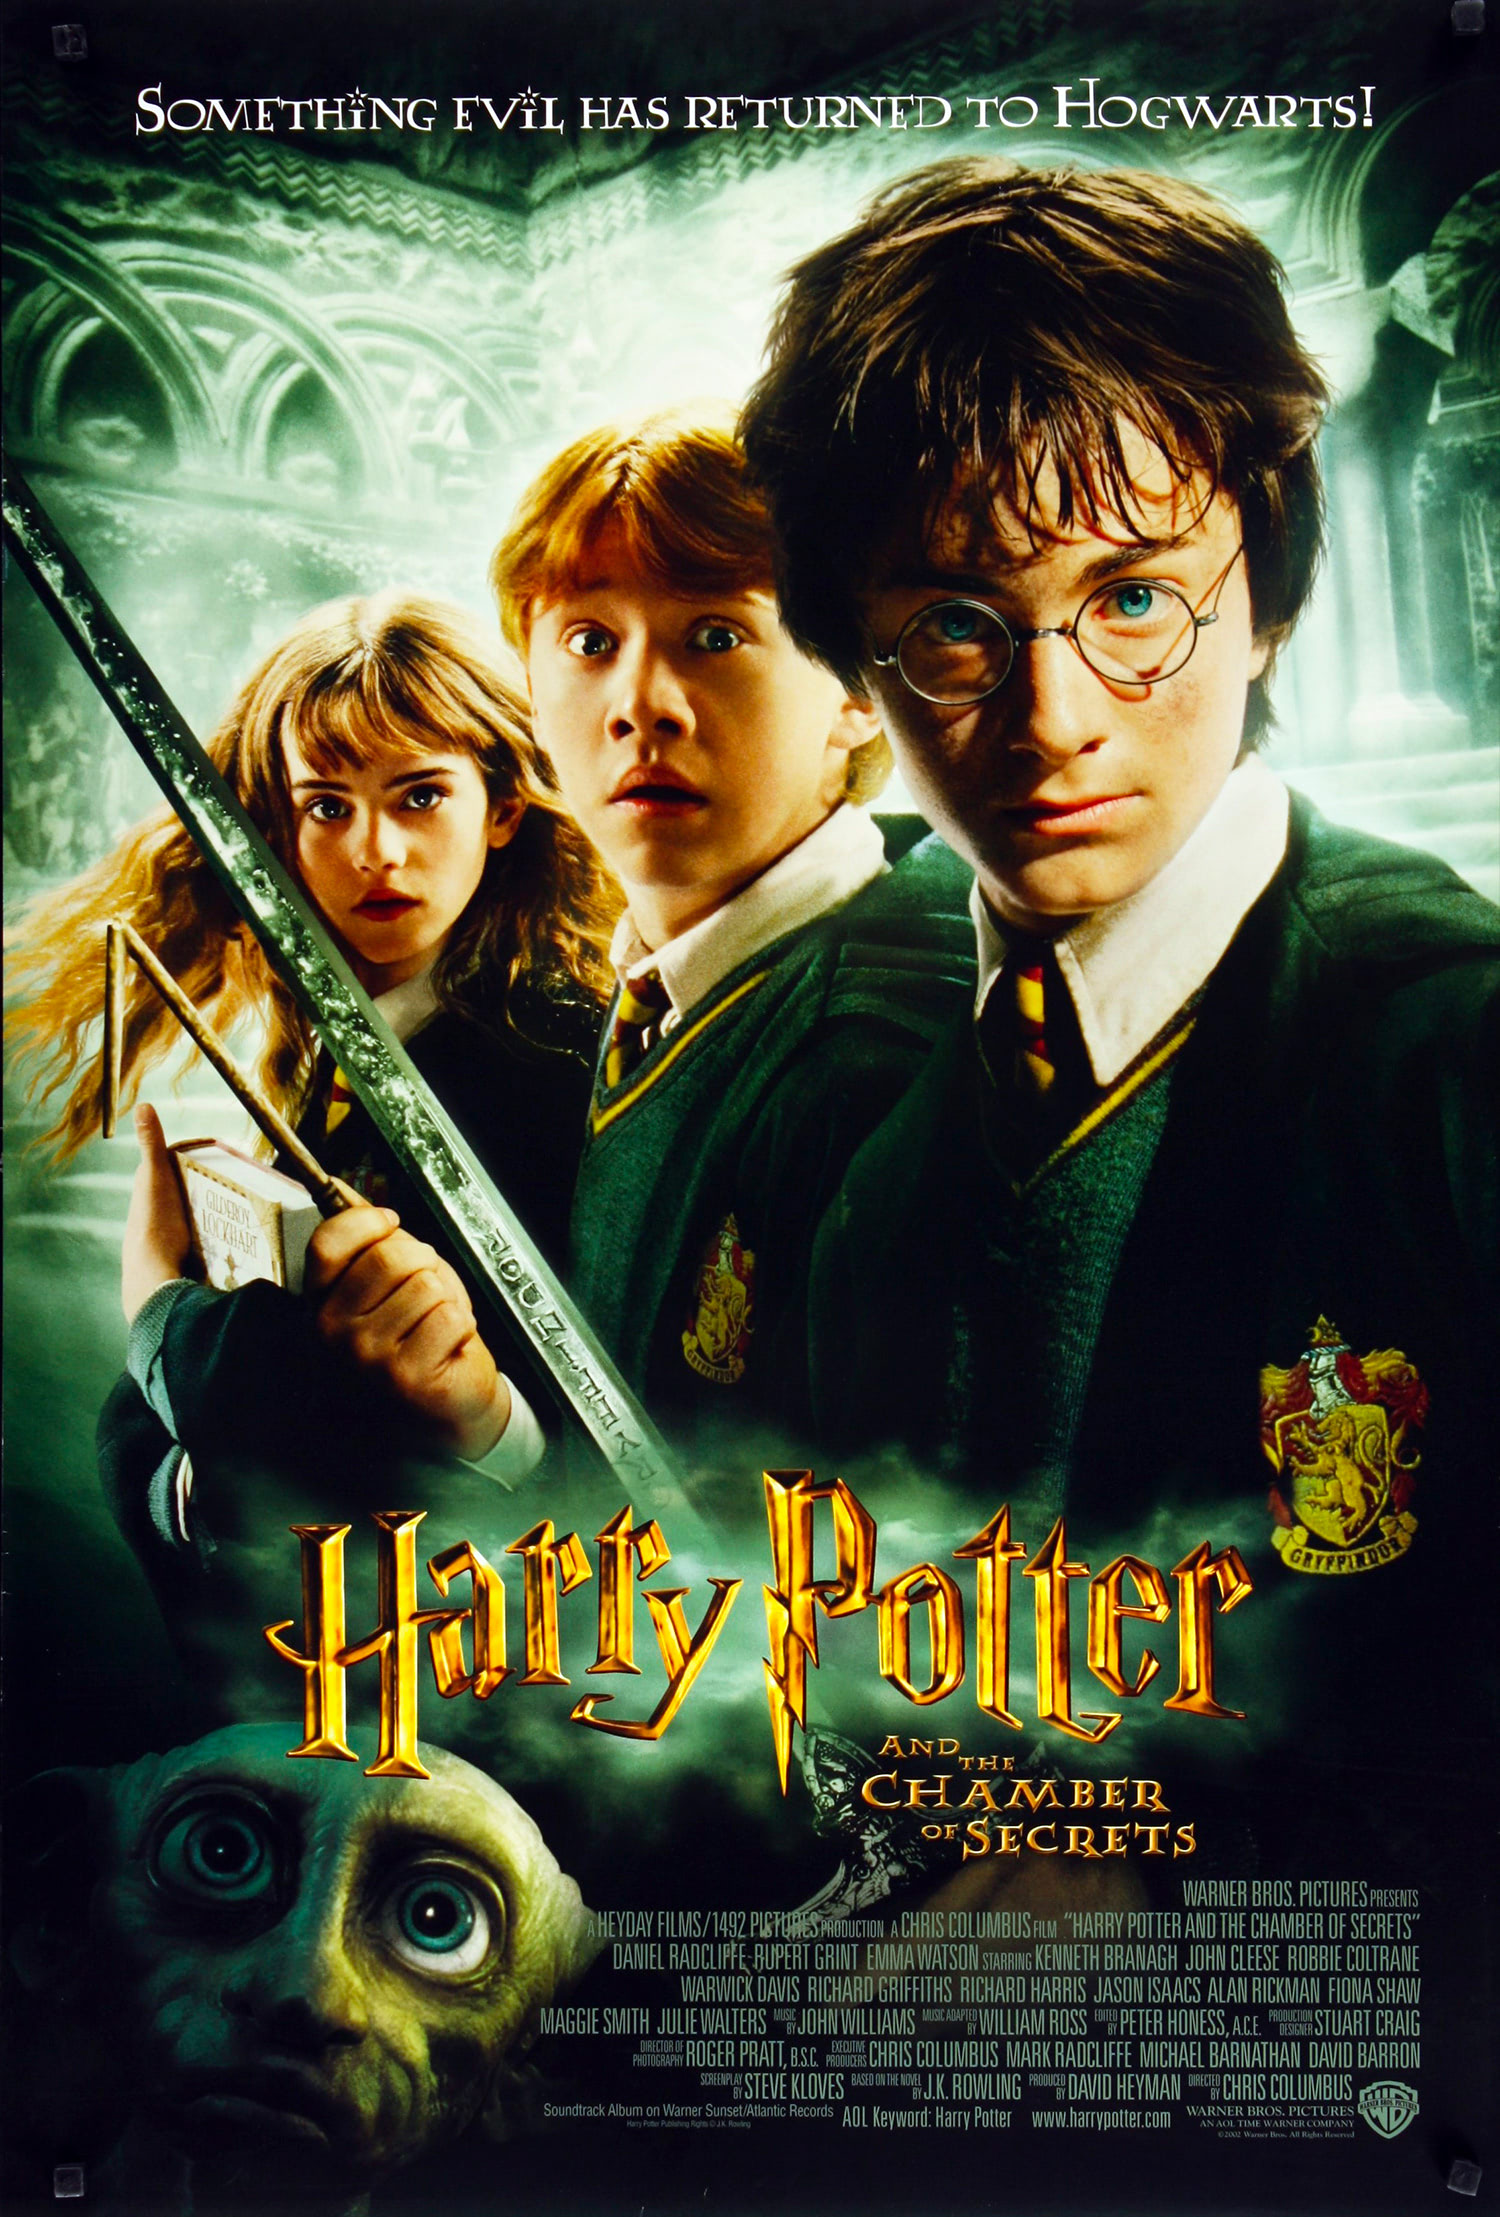 'Chamber of Secrets' theatrical poster